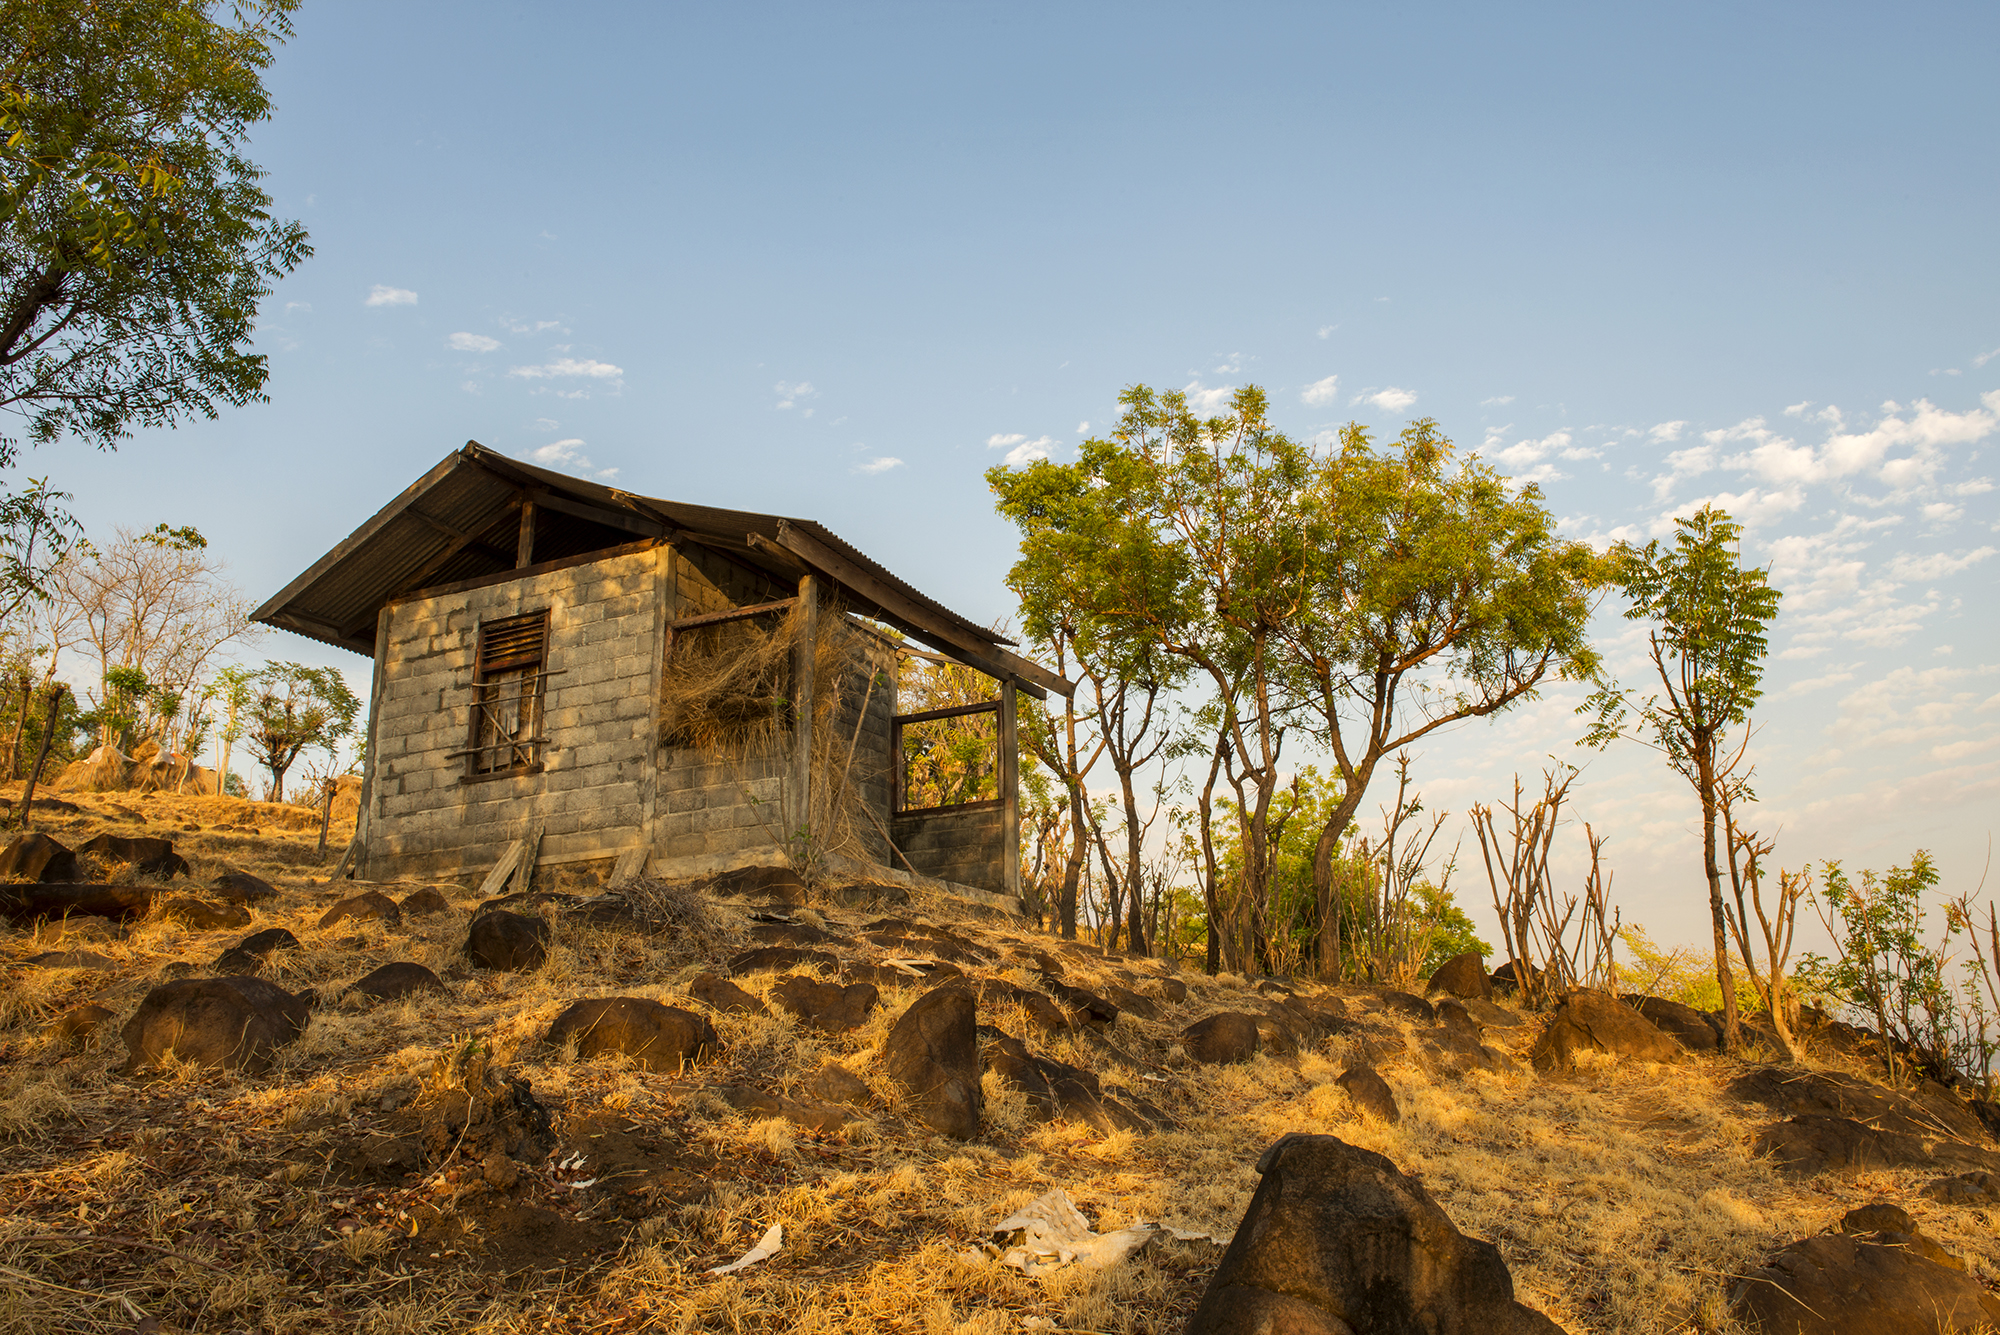 Amed - Hilltop shack early morning